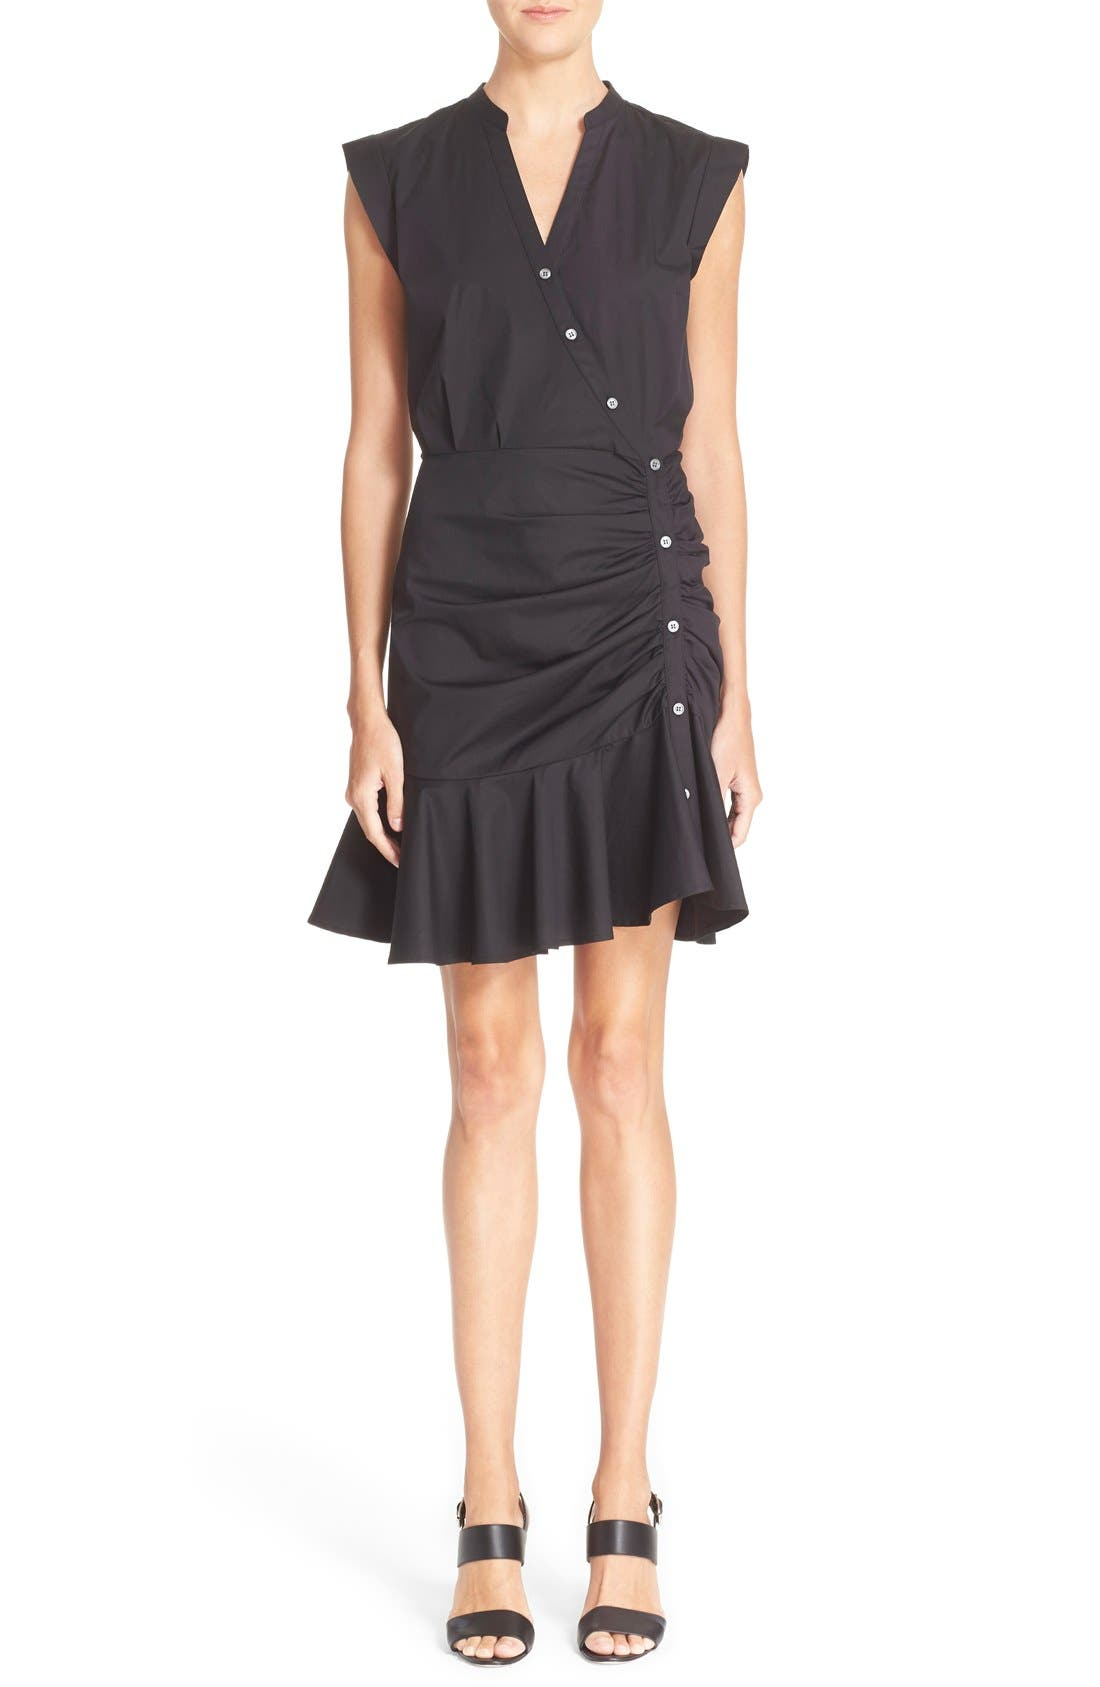 Alternate Image 1 Selected - Veronica Beard 'Fountain' Cap Sleeve Ruched Dress